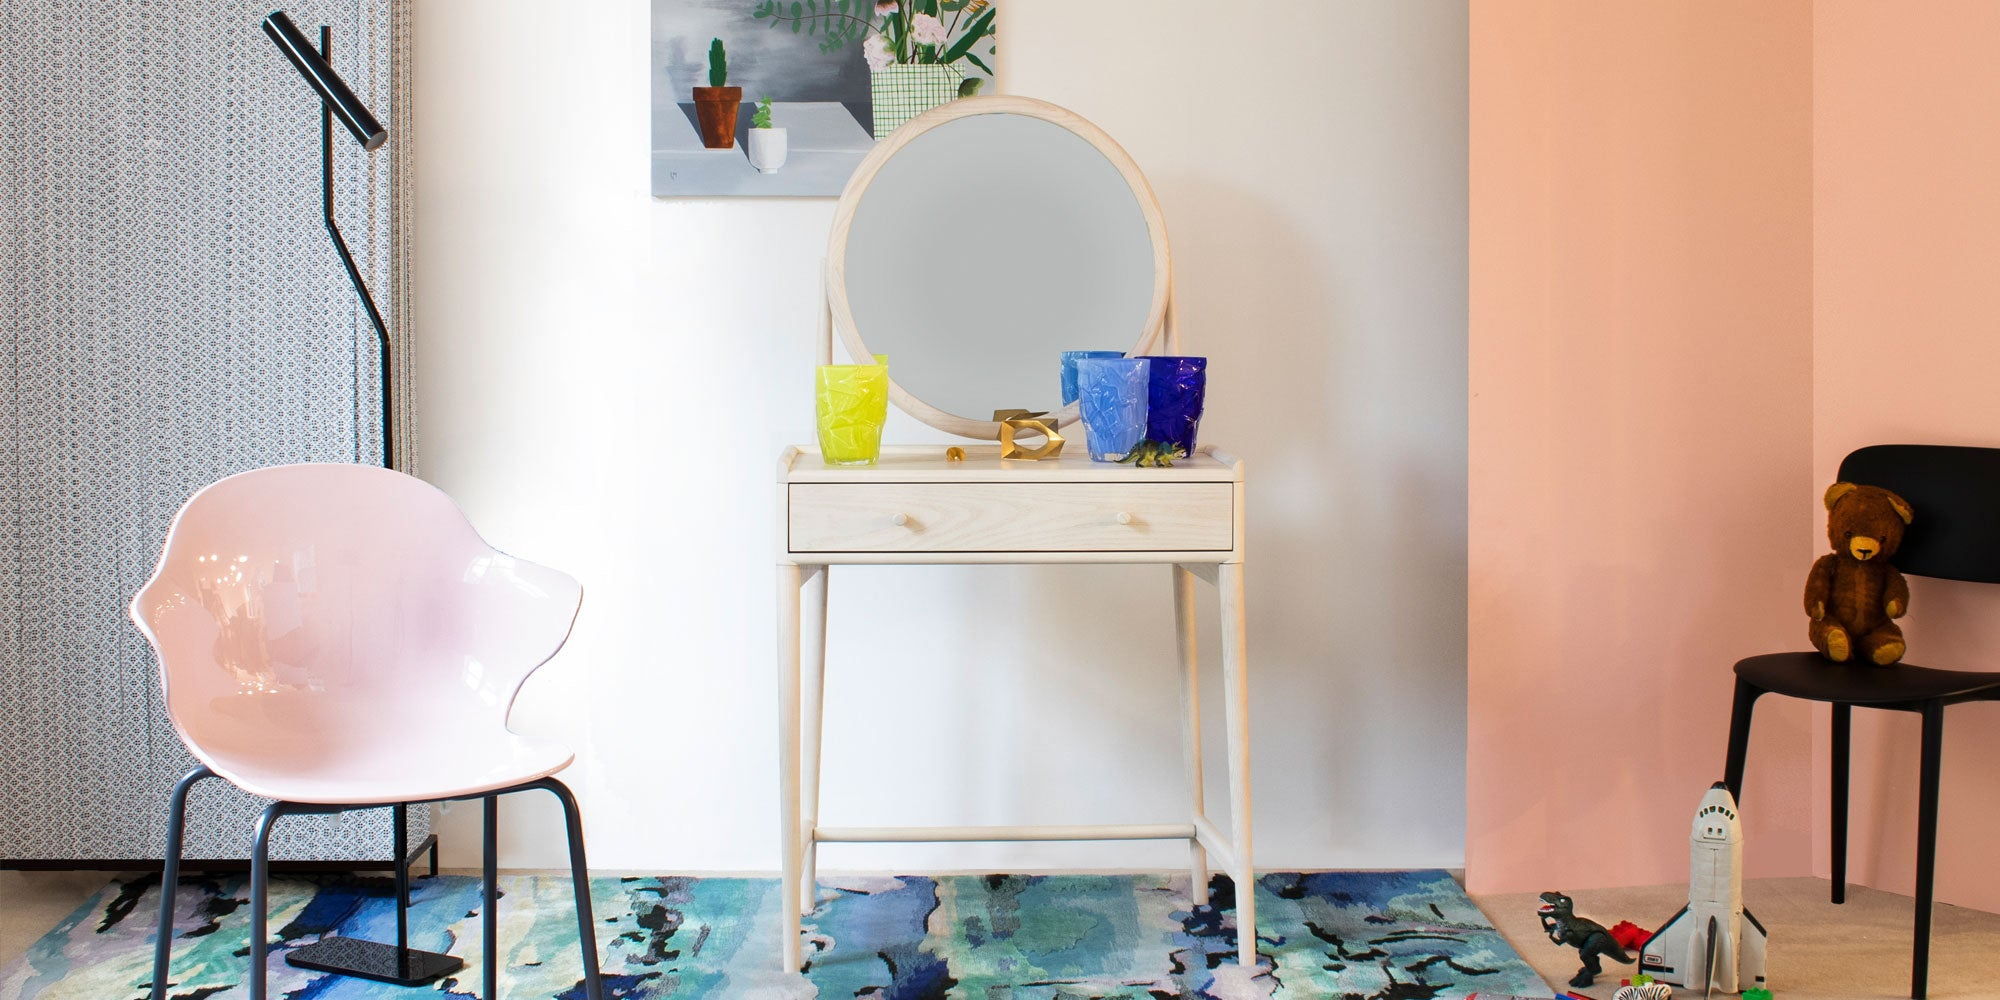 Think of creating sanctuaries in the home like our 'Calming Romance' Dressing Area